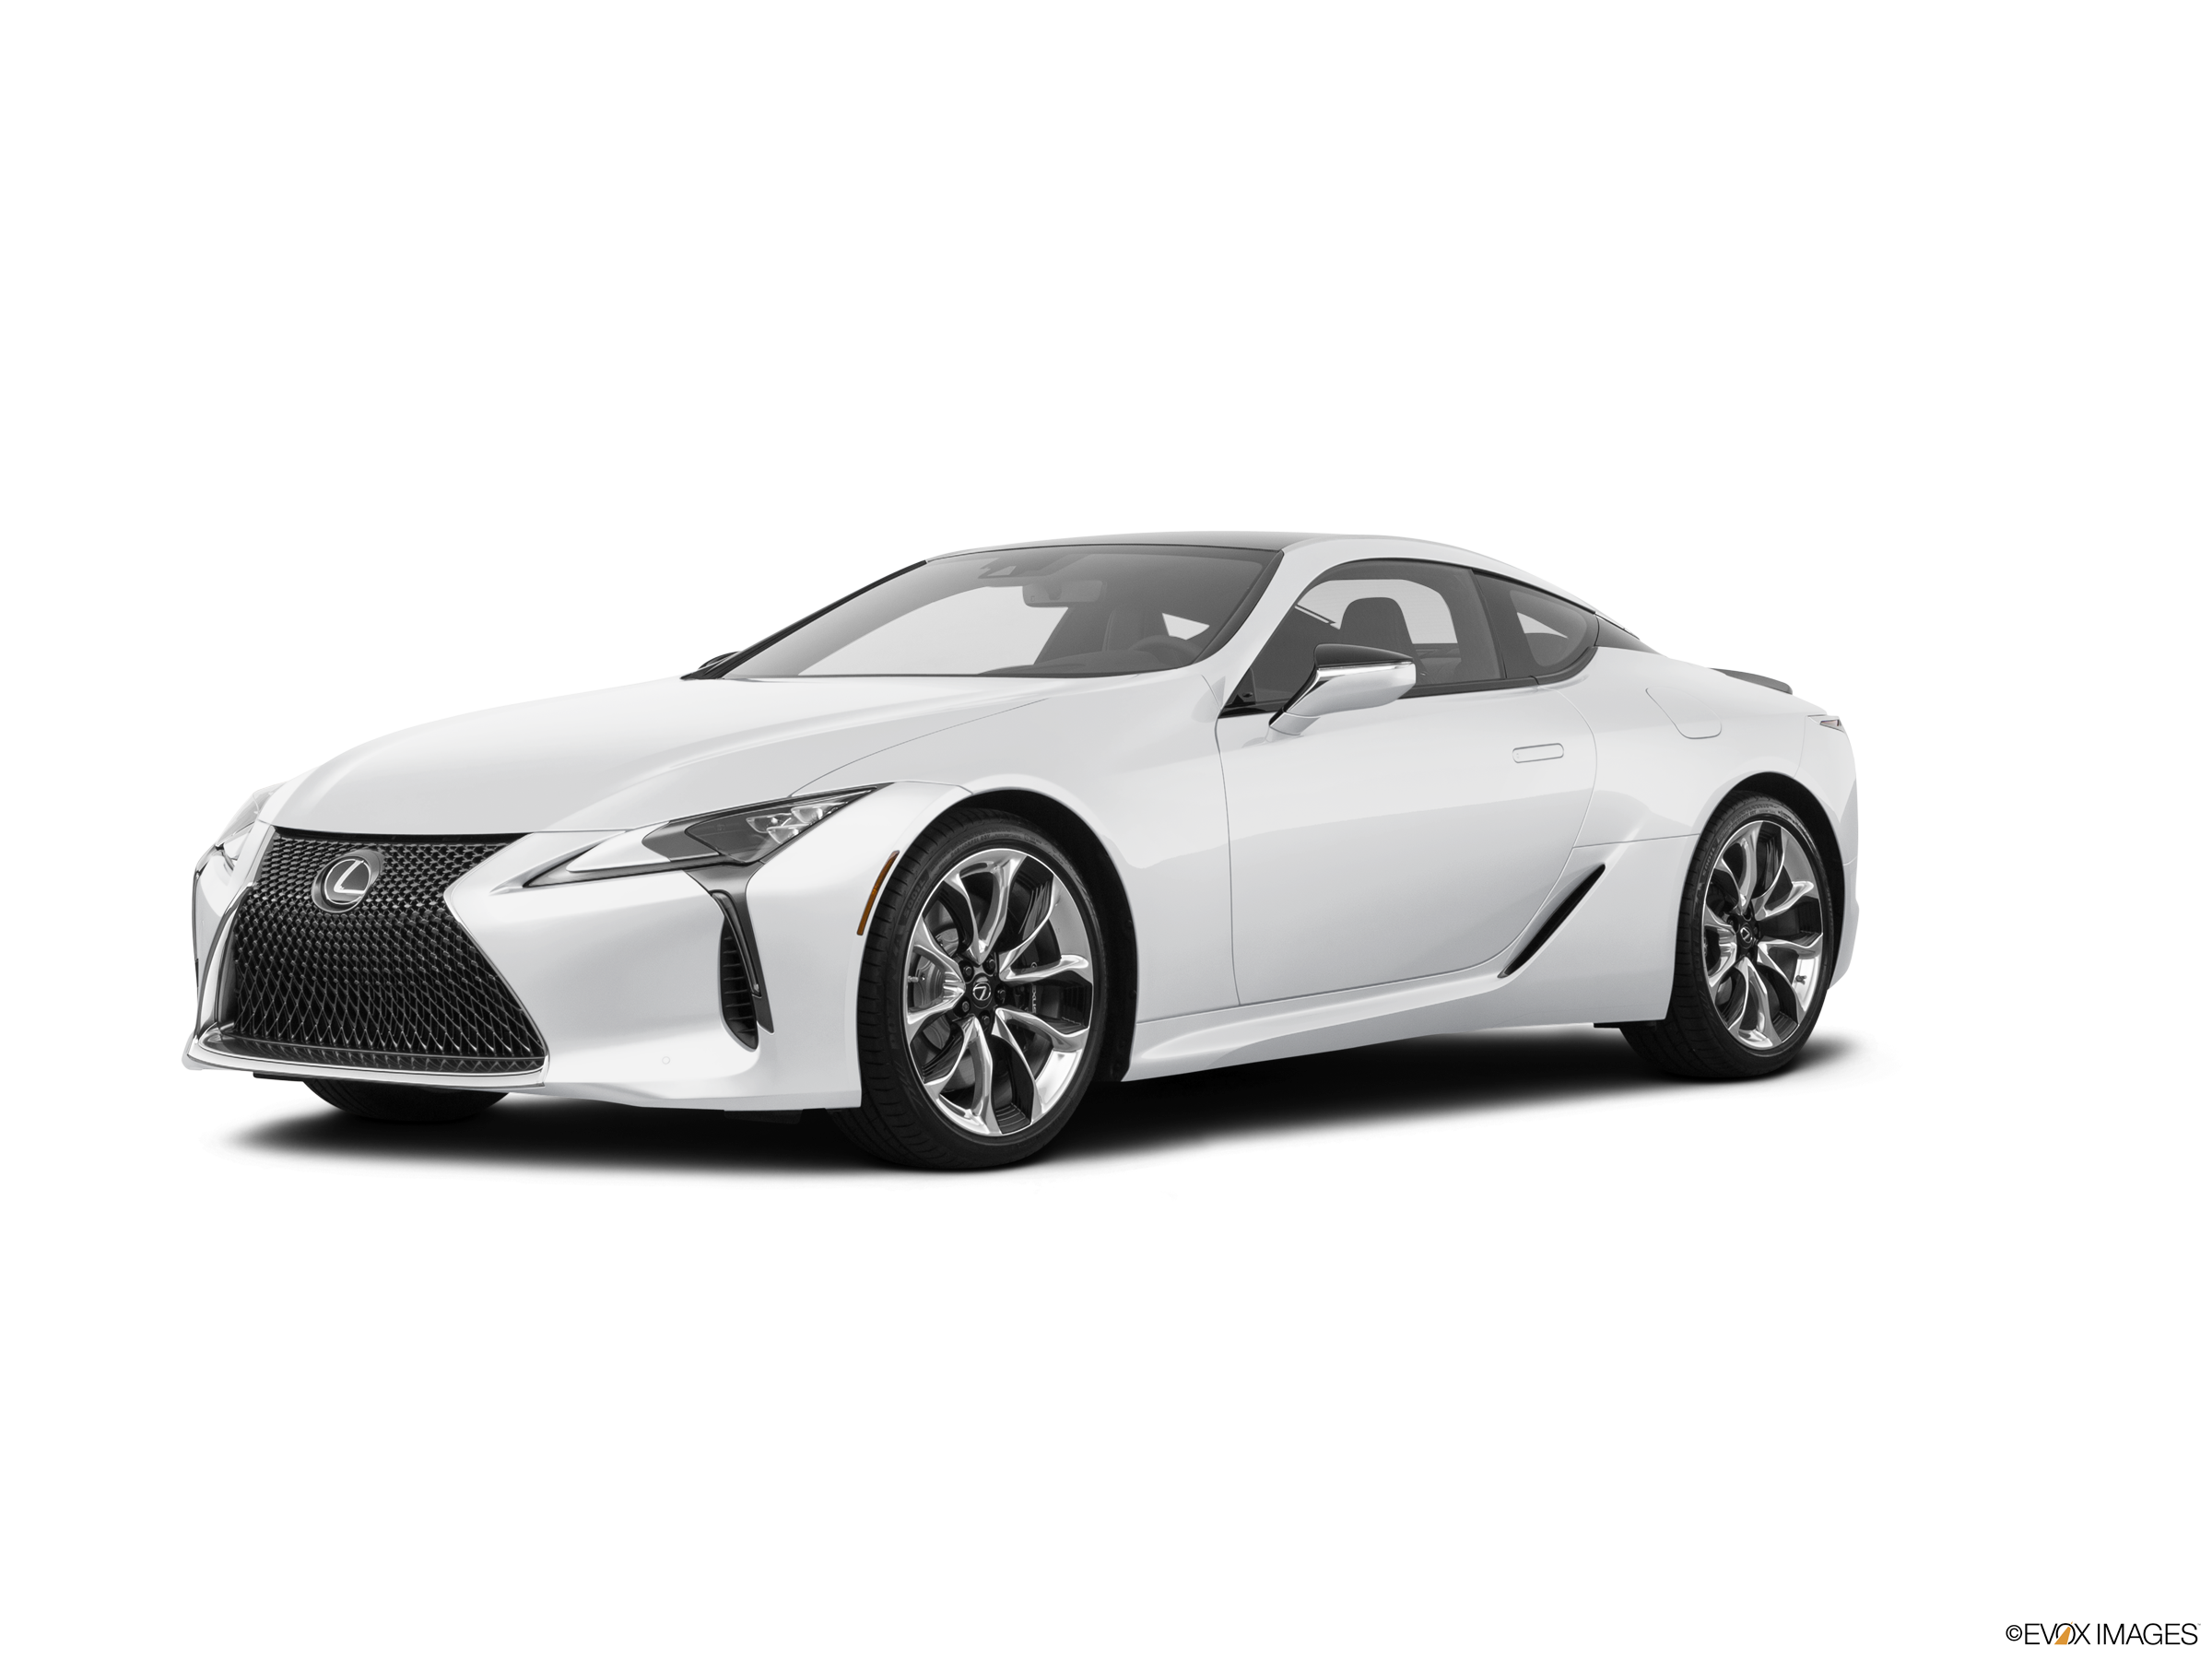 Highest Horsepower Luxury Vehicles of 2019 - 2019 Lexus LC